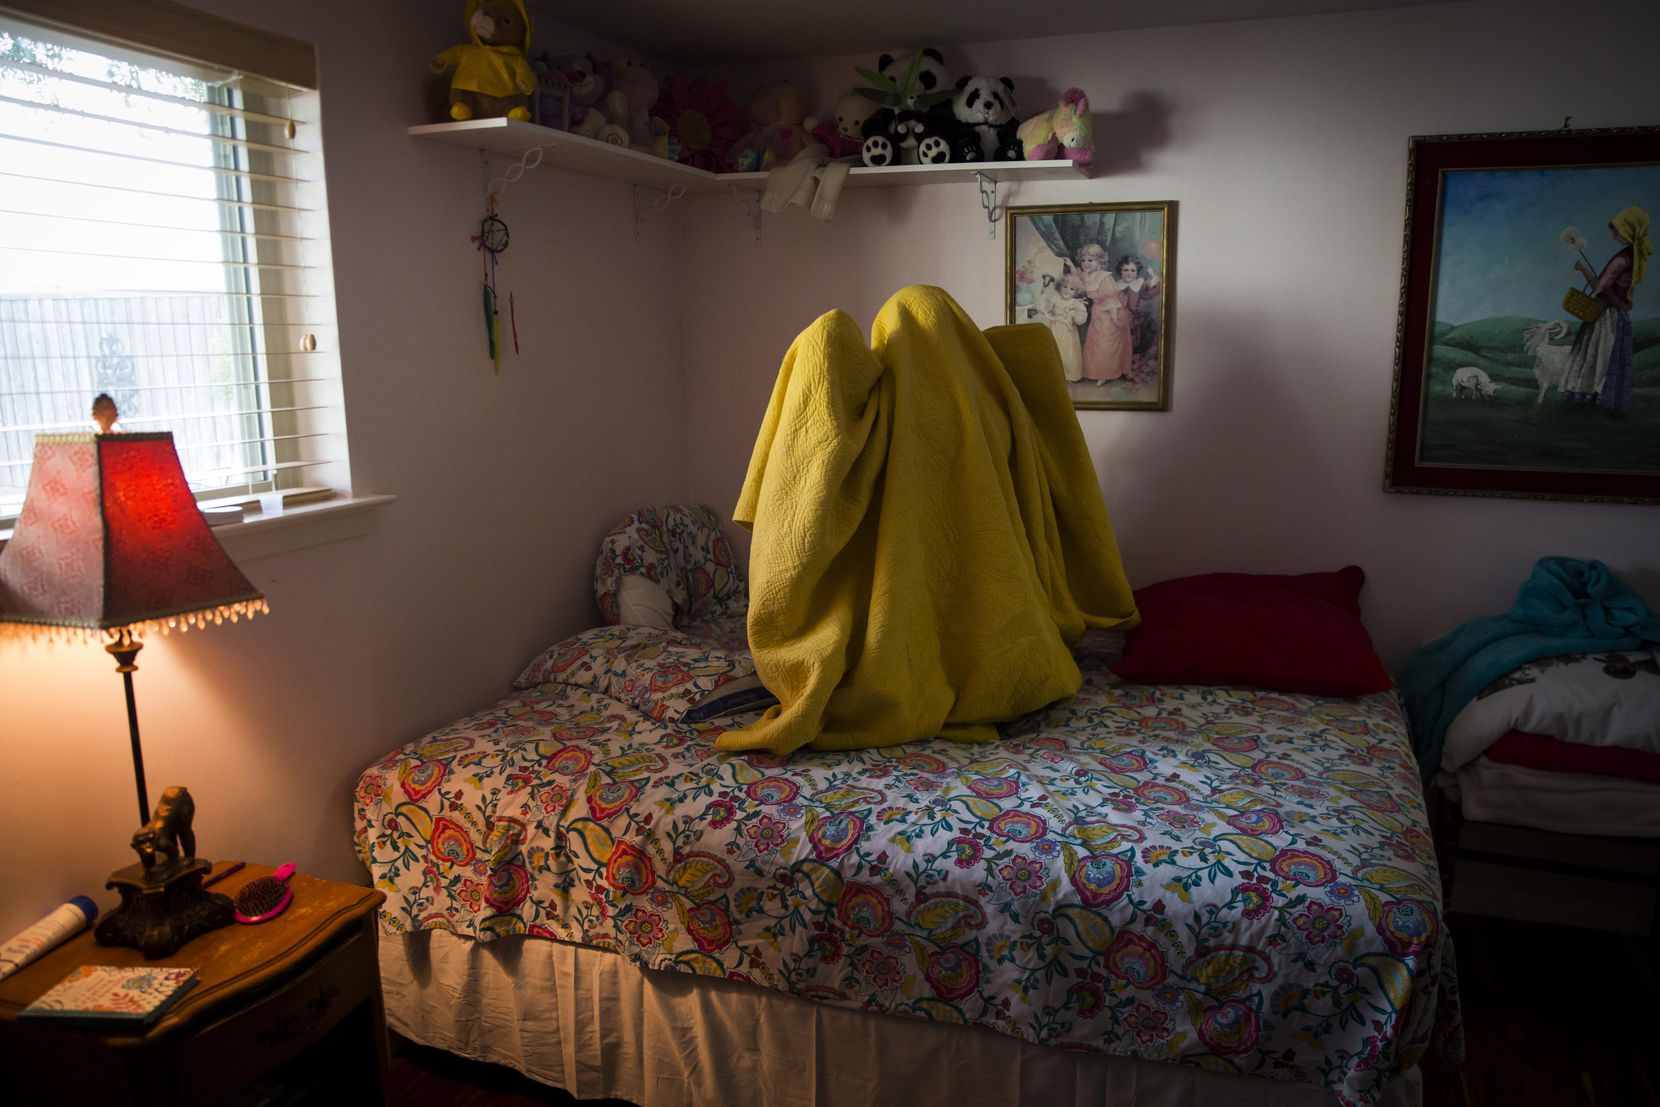 Kara Zartler wraps herself in her blanket, kneeling on her bed and rocking forward and back, one of her usual calming mechanisms, after getting home from school on Thursday, March 9, in Richardson. (Smiley N. Pool/The Dallas Morning News)